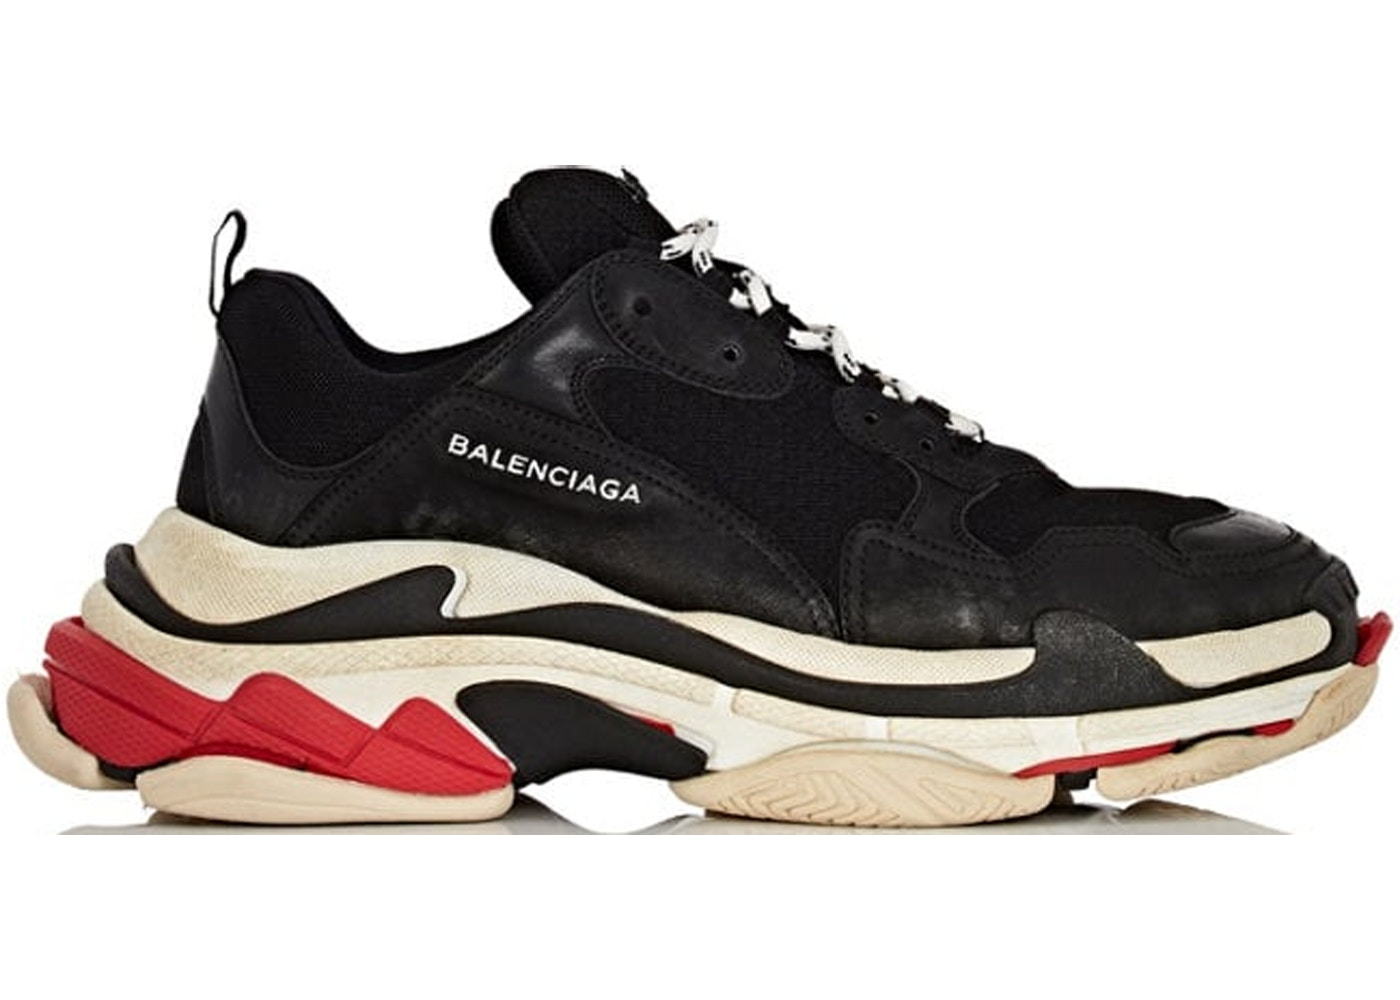 f172ba549242 Balenciaga Triple S Black White Red (2018 Reissue) - undefined